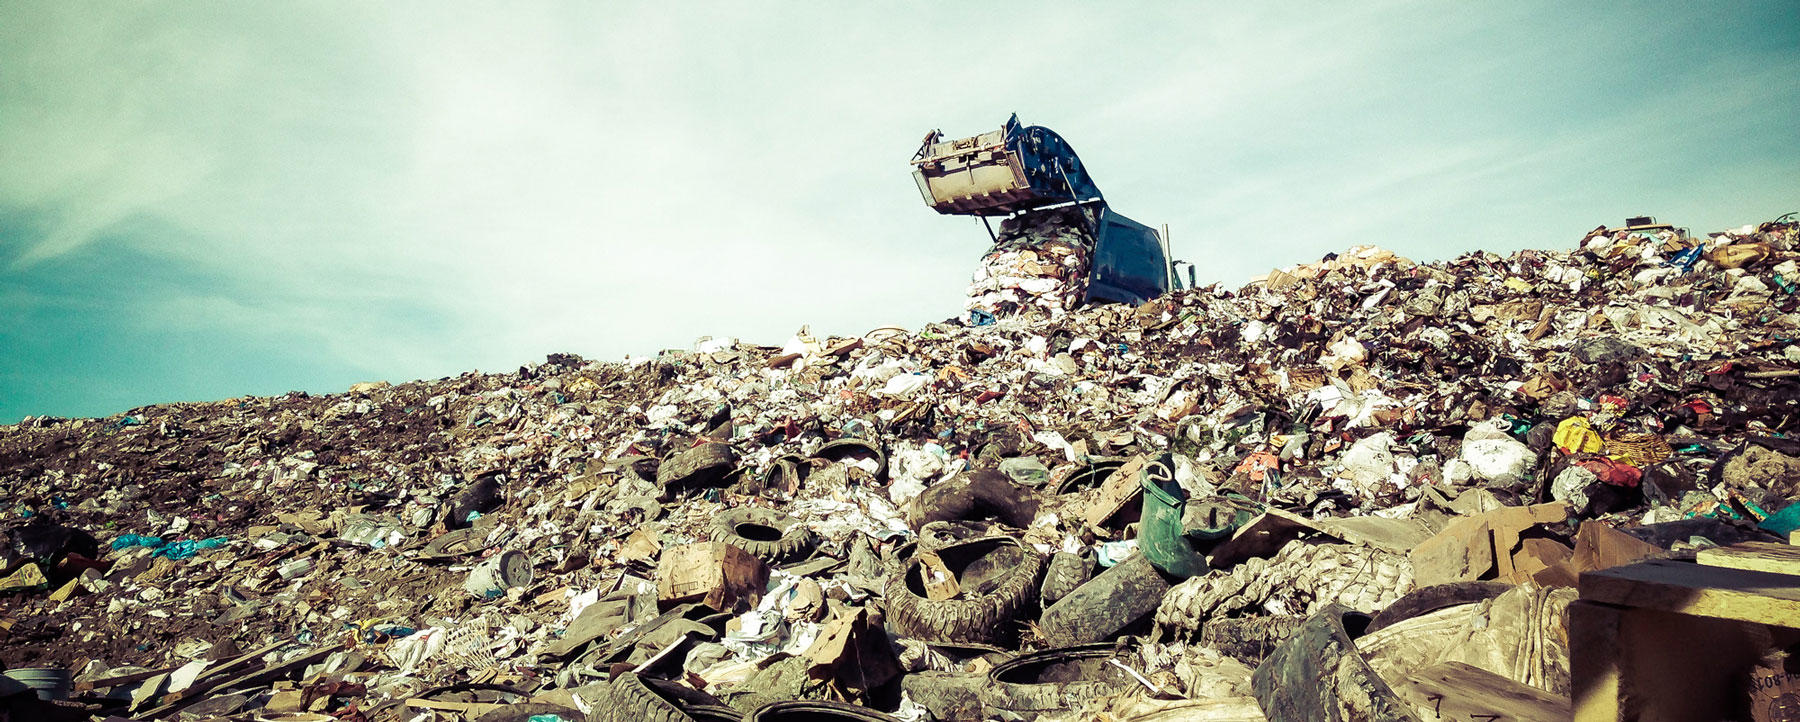 Garbage trunk dumping waste on landfill